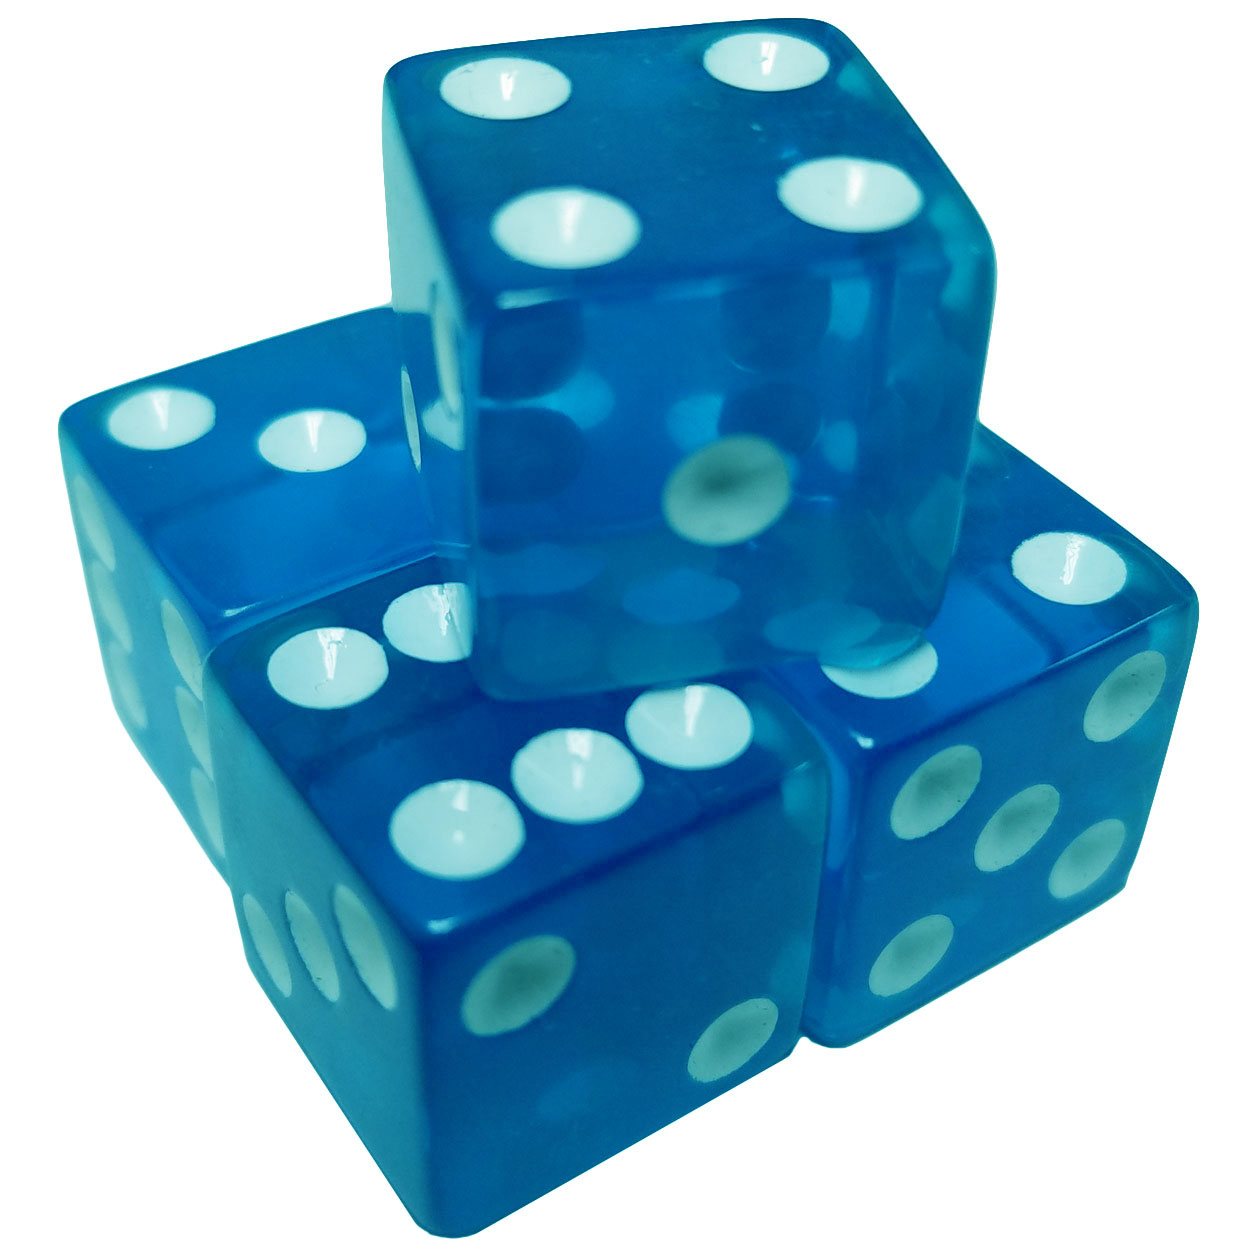 Set of 5 Transparent Blue Square Corner Dice 12mm White Spots in Snow Organza Bag